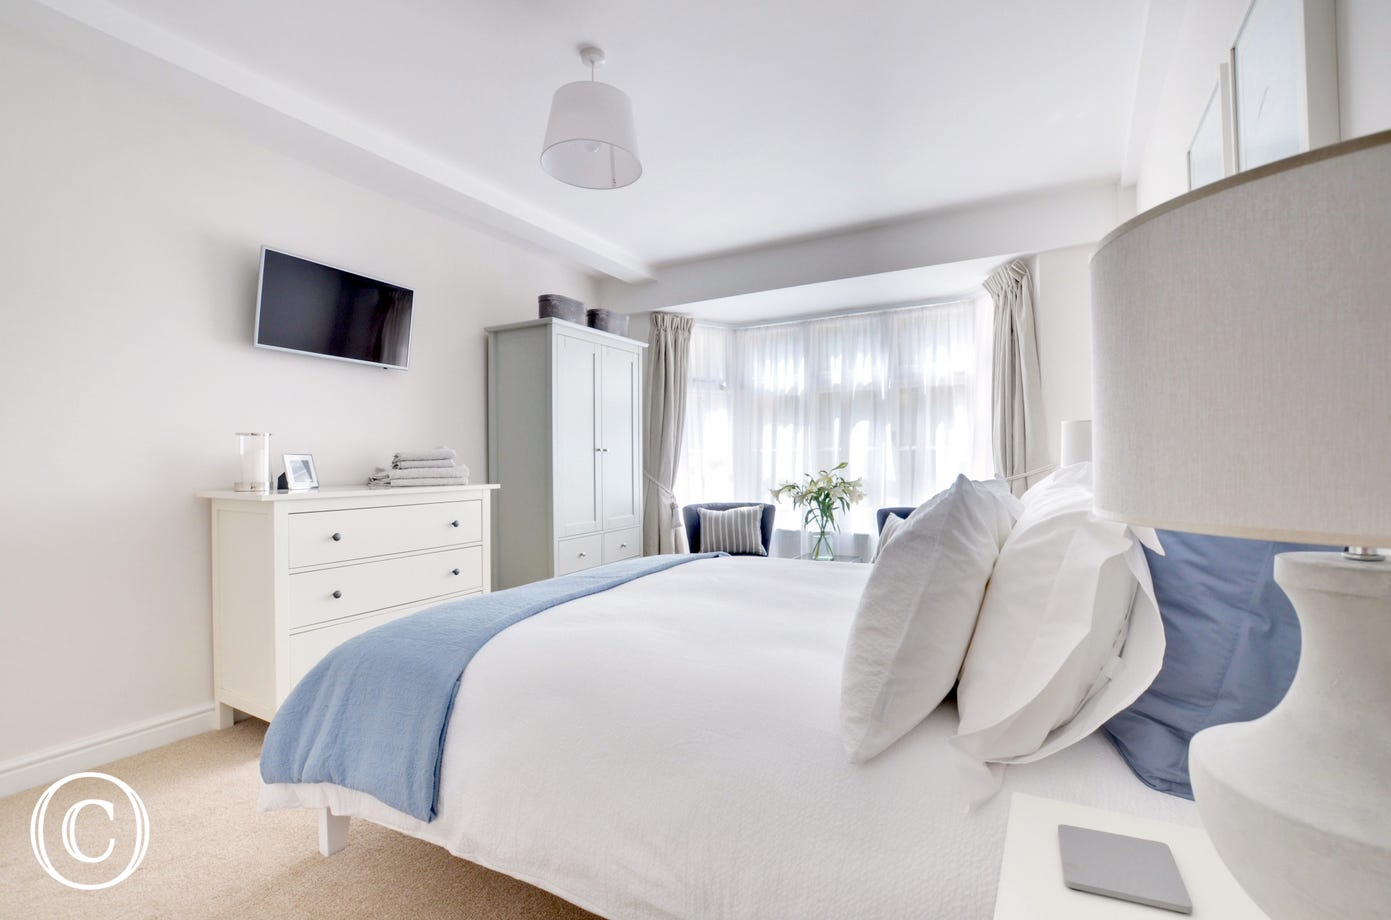 The beautifully decorated master bedroom